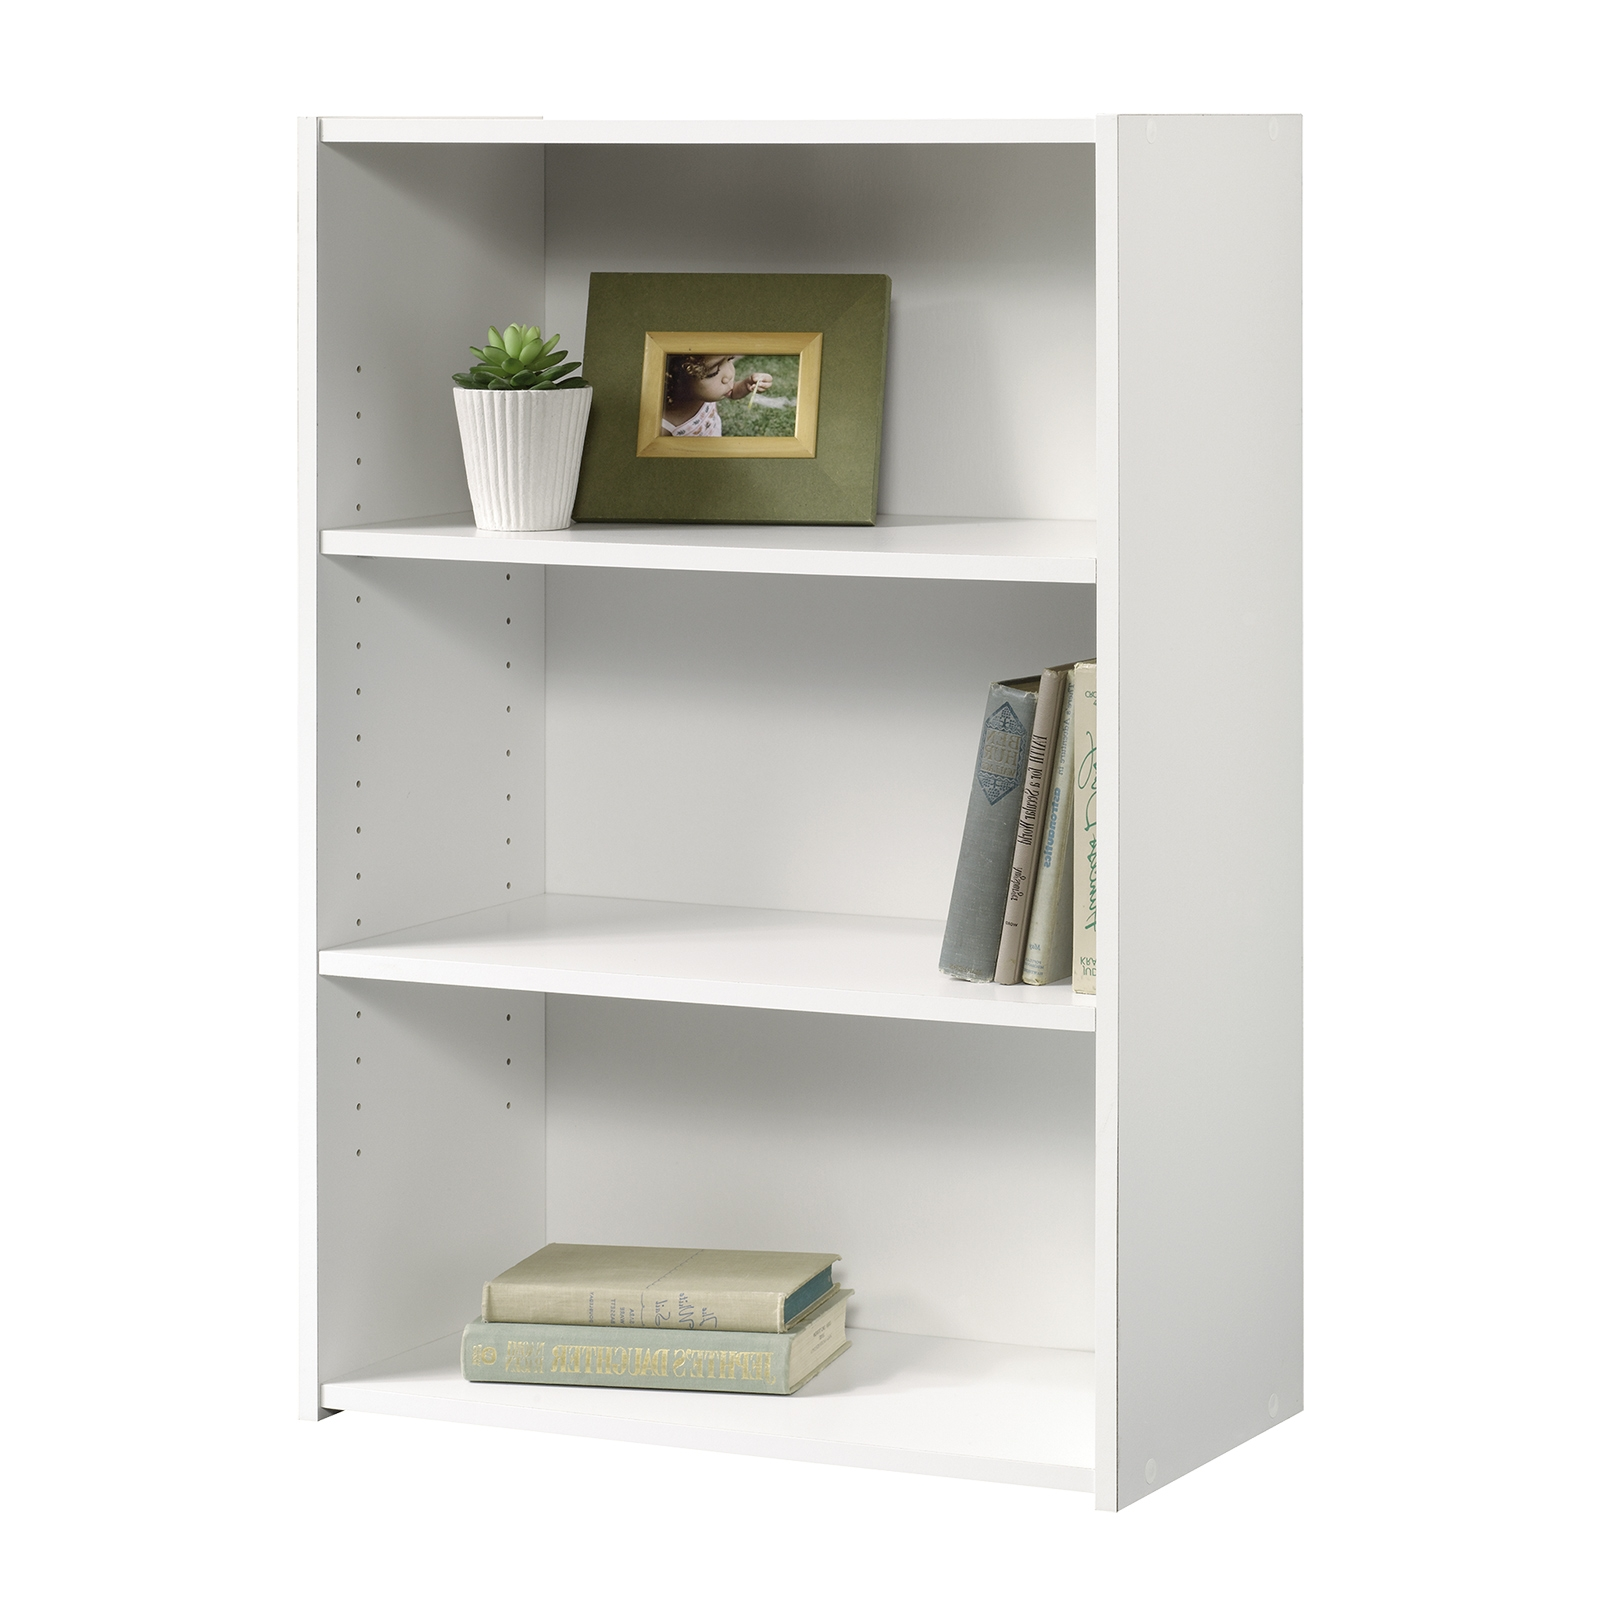 Popular Mainstays 3 Shelf Bookcases For Beginnings (View 10 of 15)